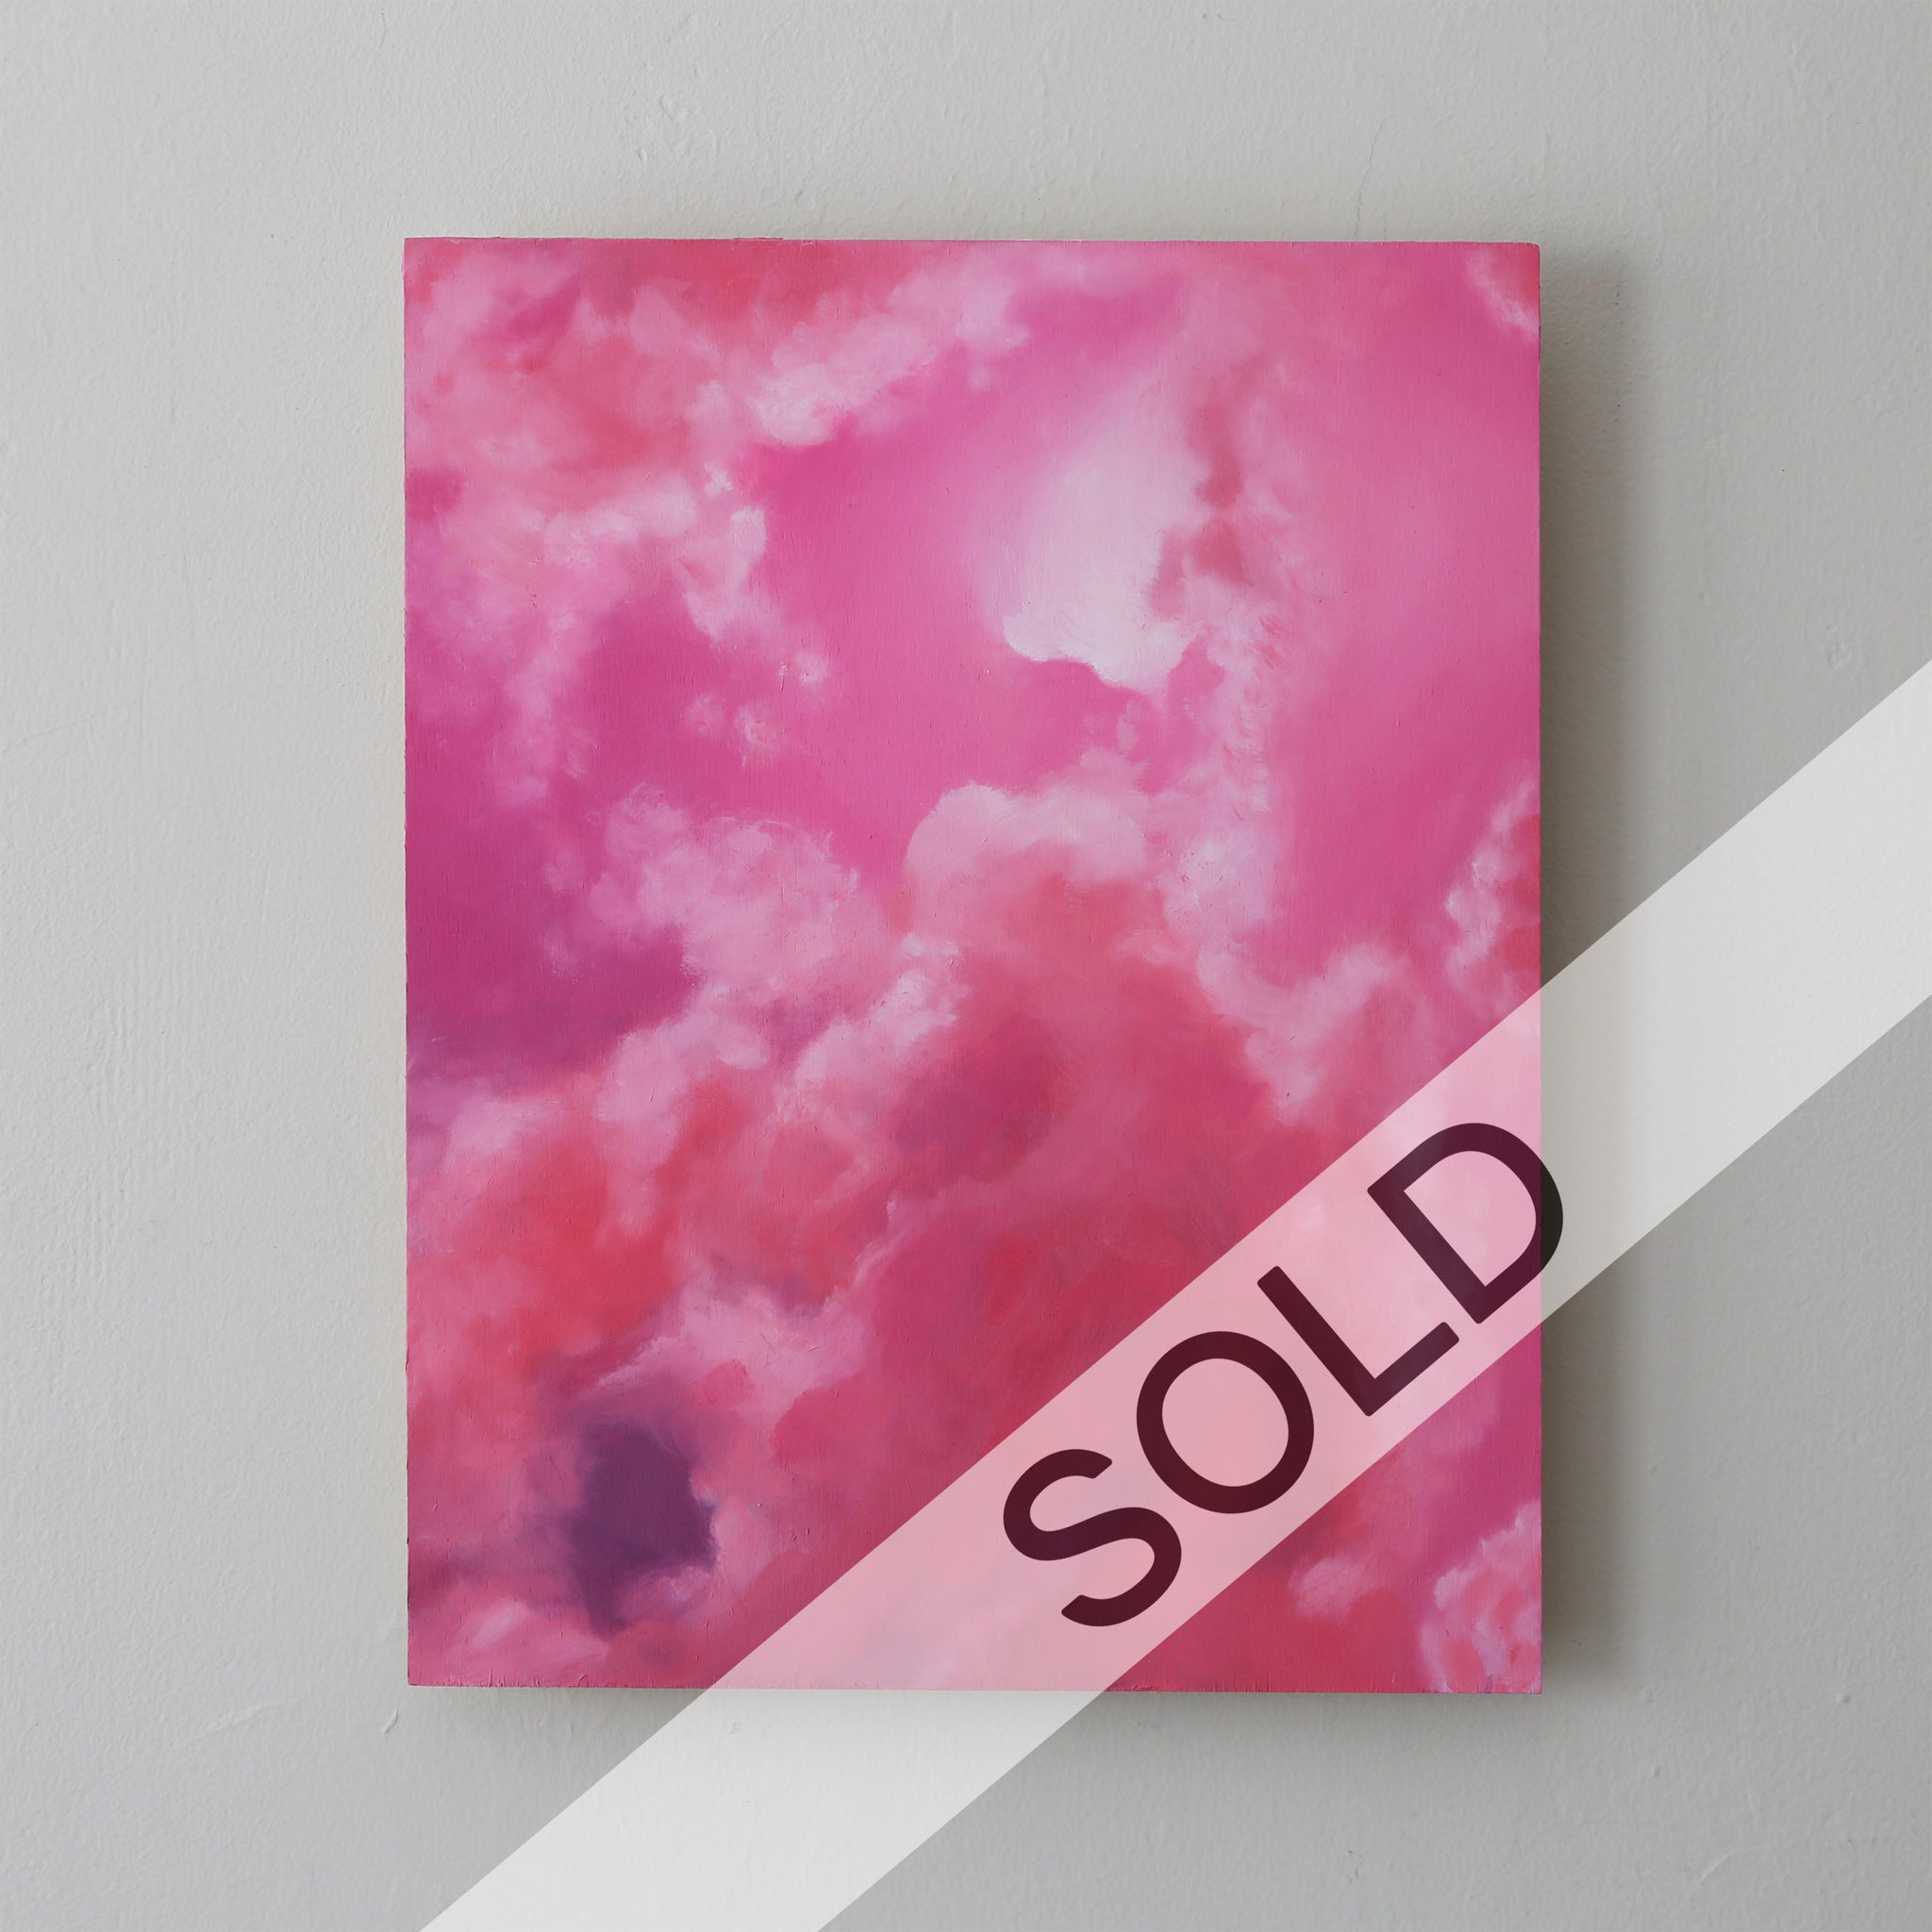 Rose Quartz Skies Original Oil Painting